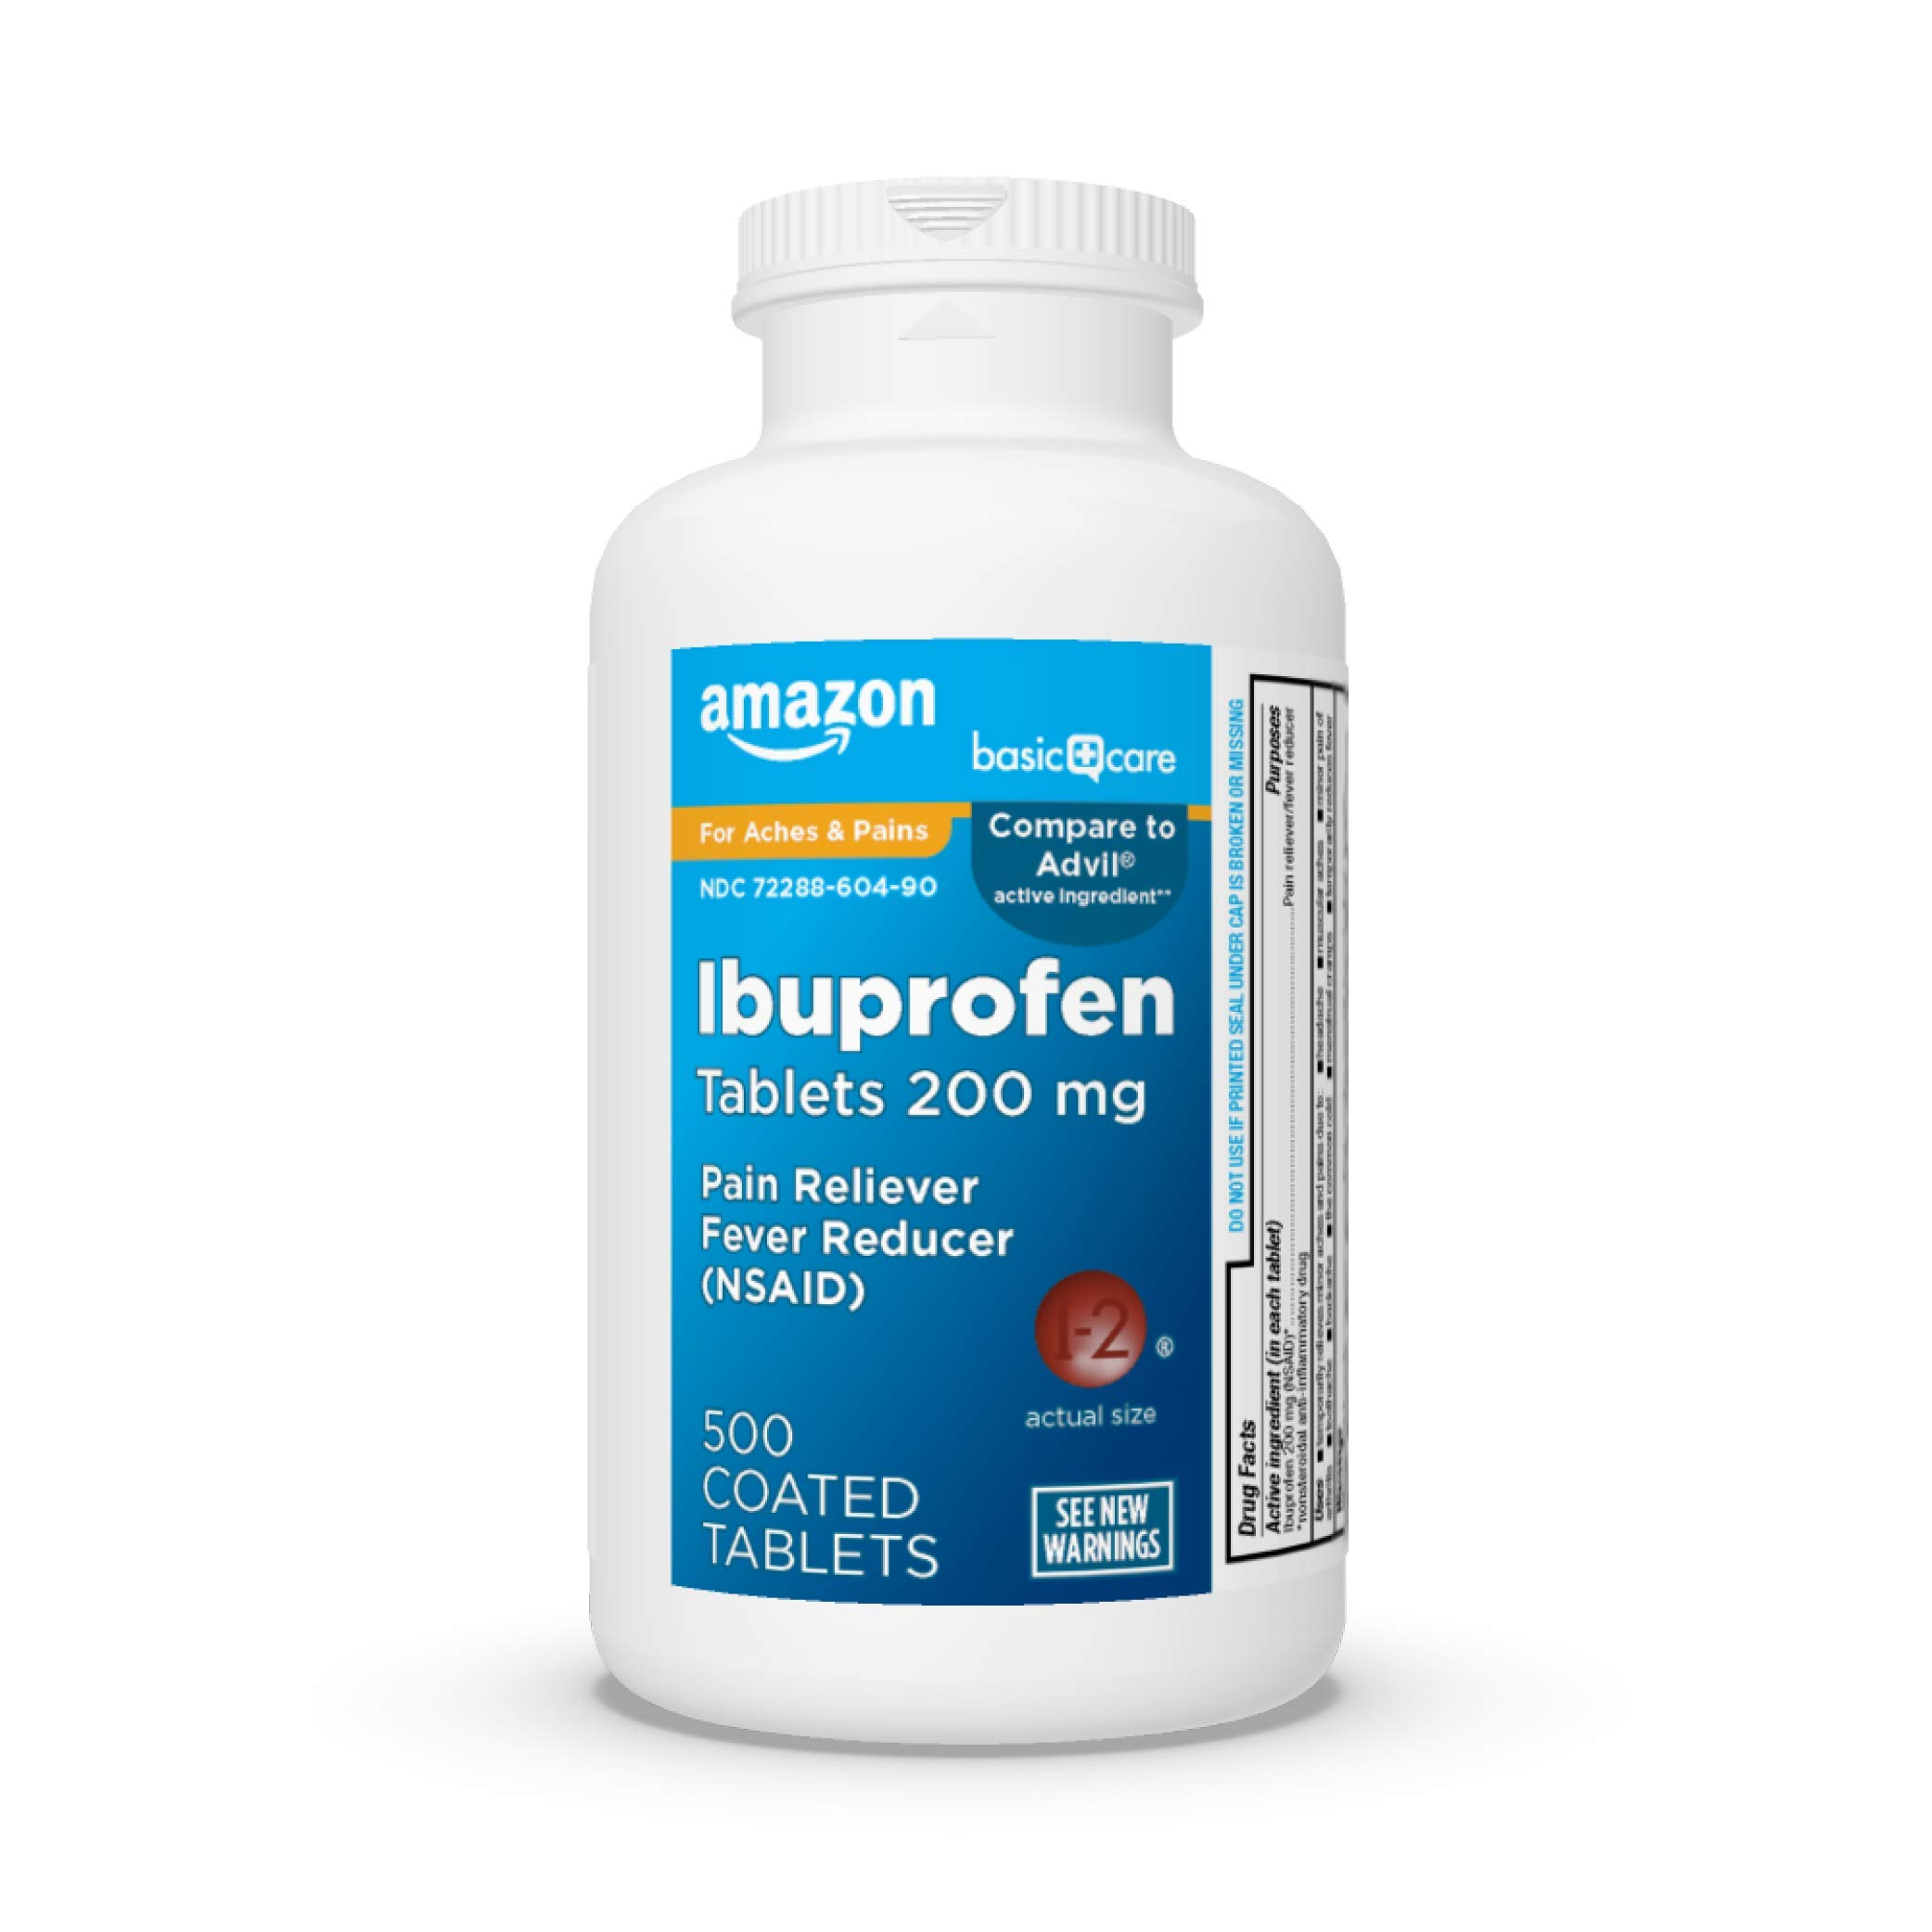 Amazon Basic Care Ibuprofen Tablets 200 mg, Pain Reliever/Fever Reducer, 500 Count